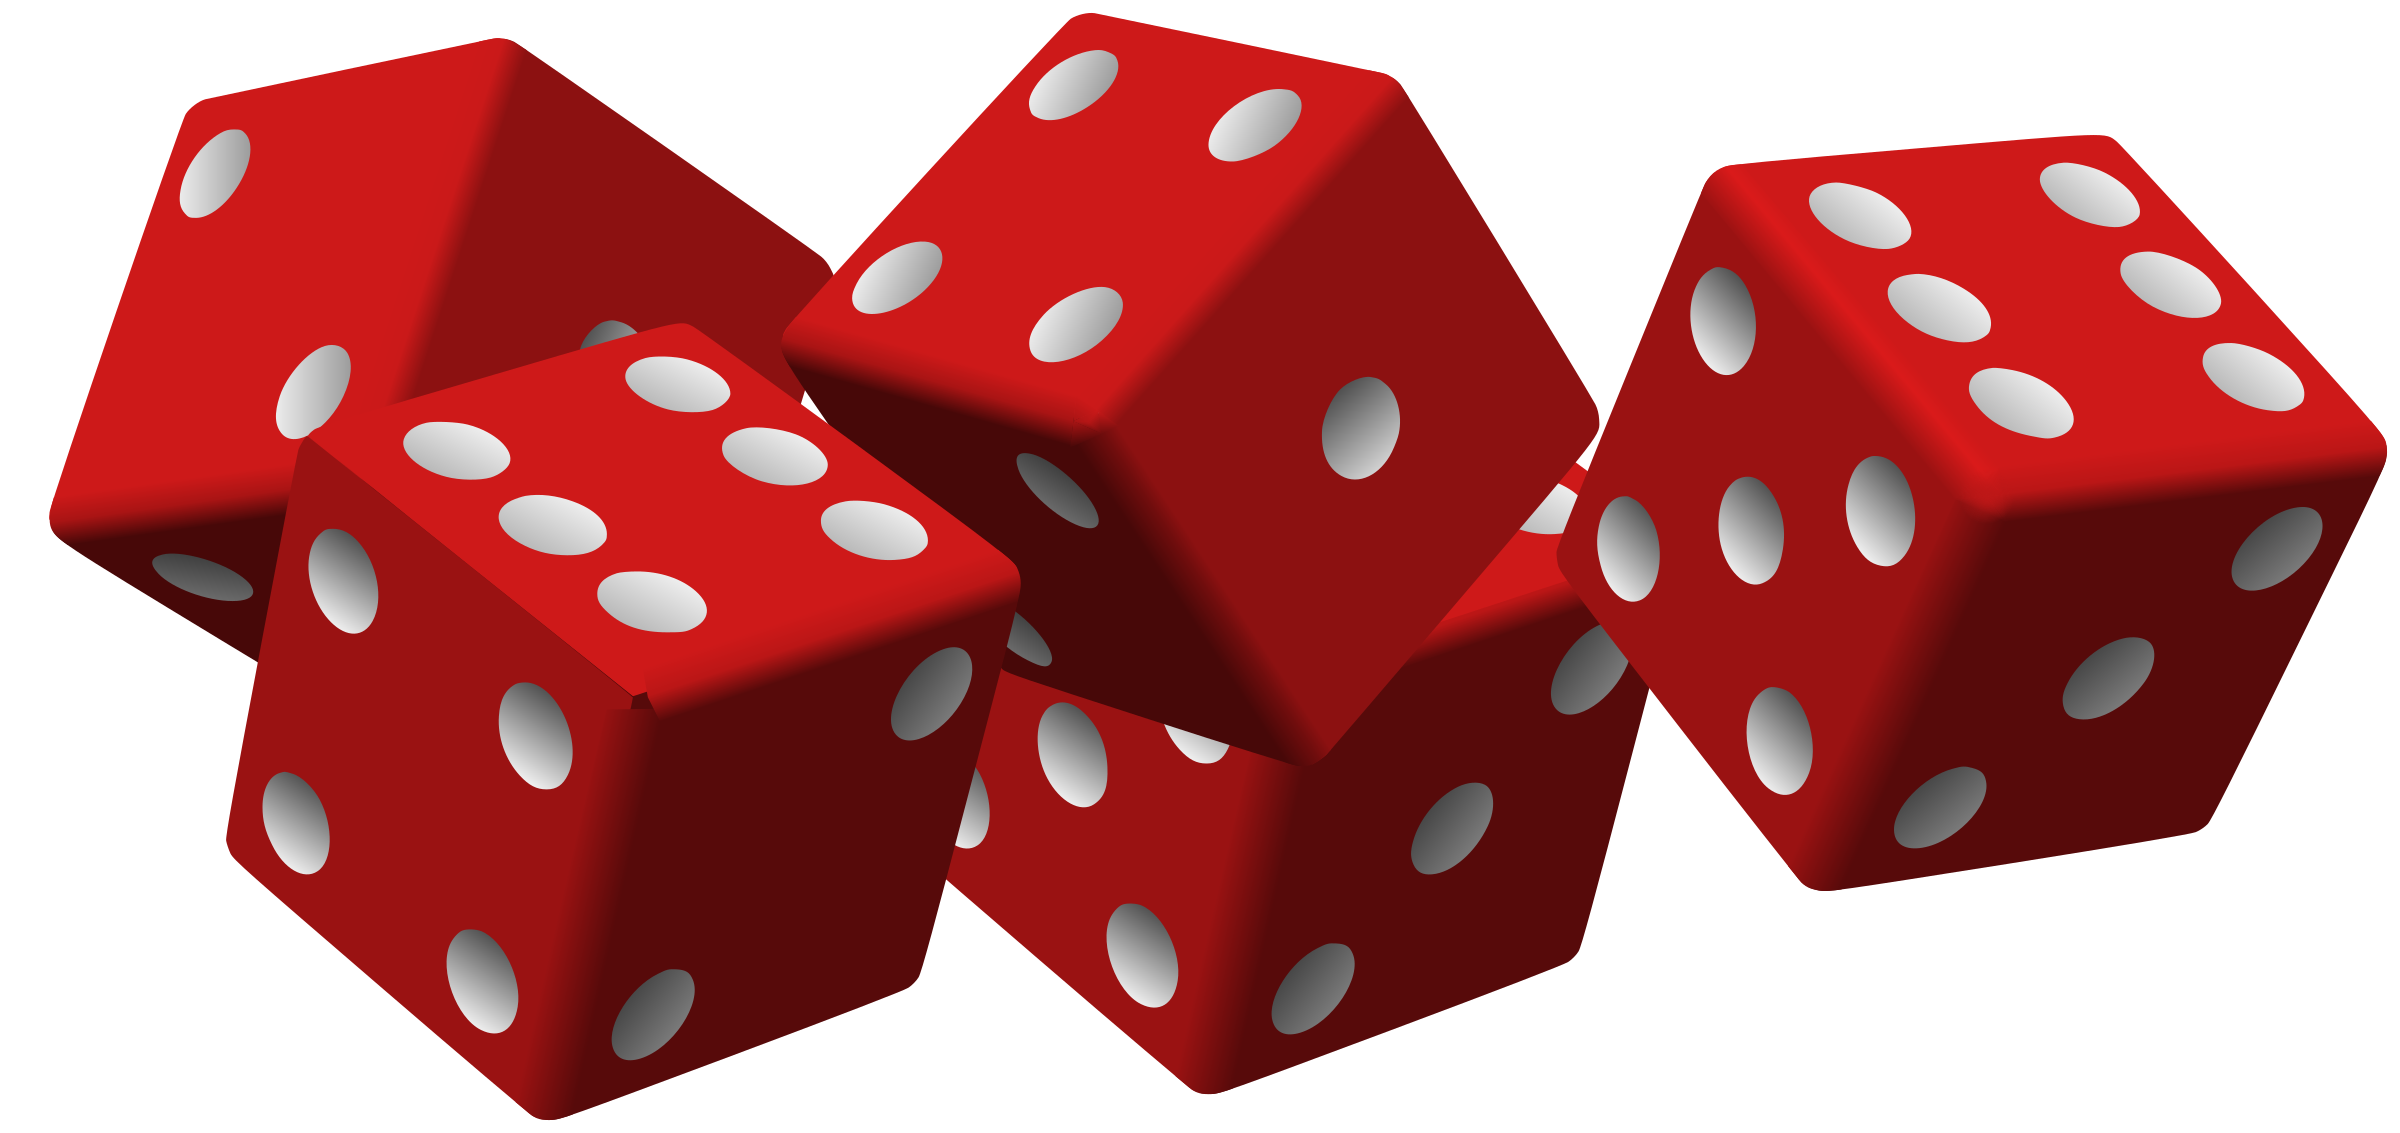 Red dice png. Five icons free and